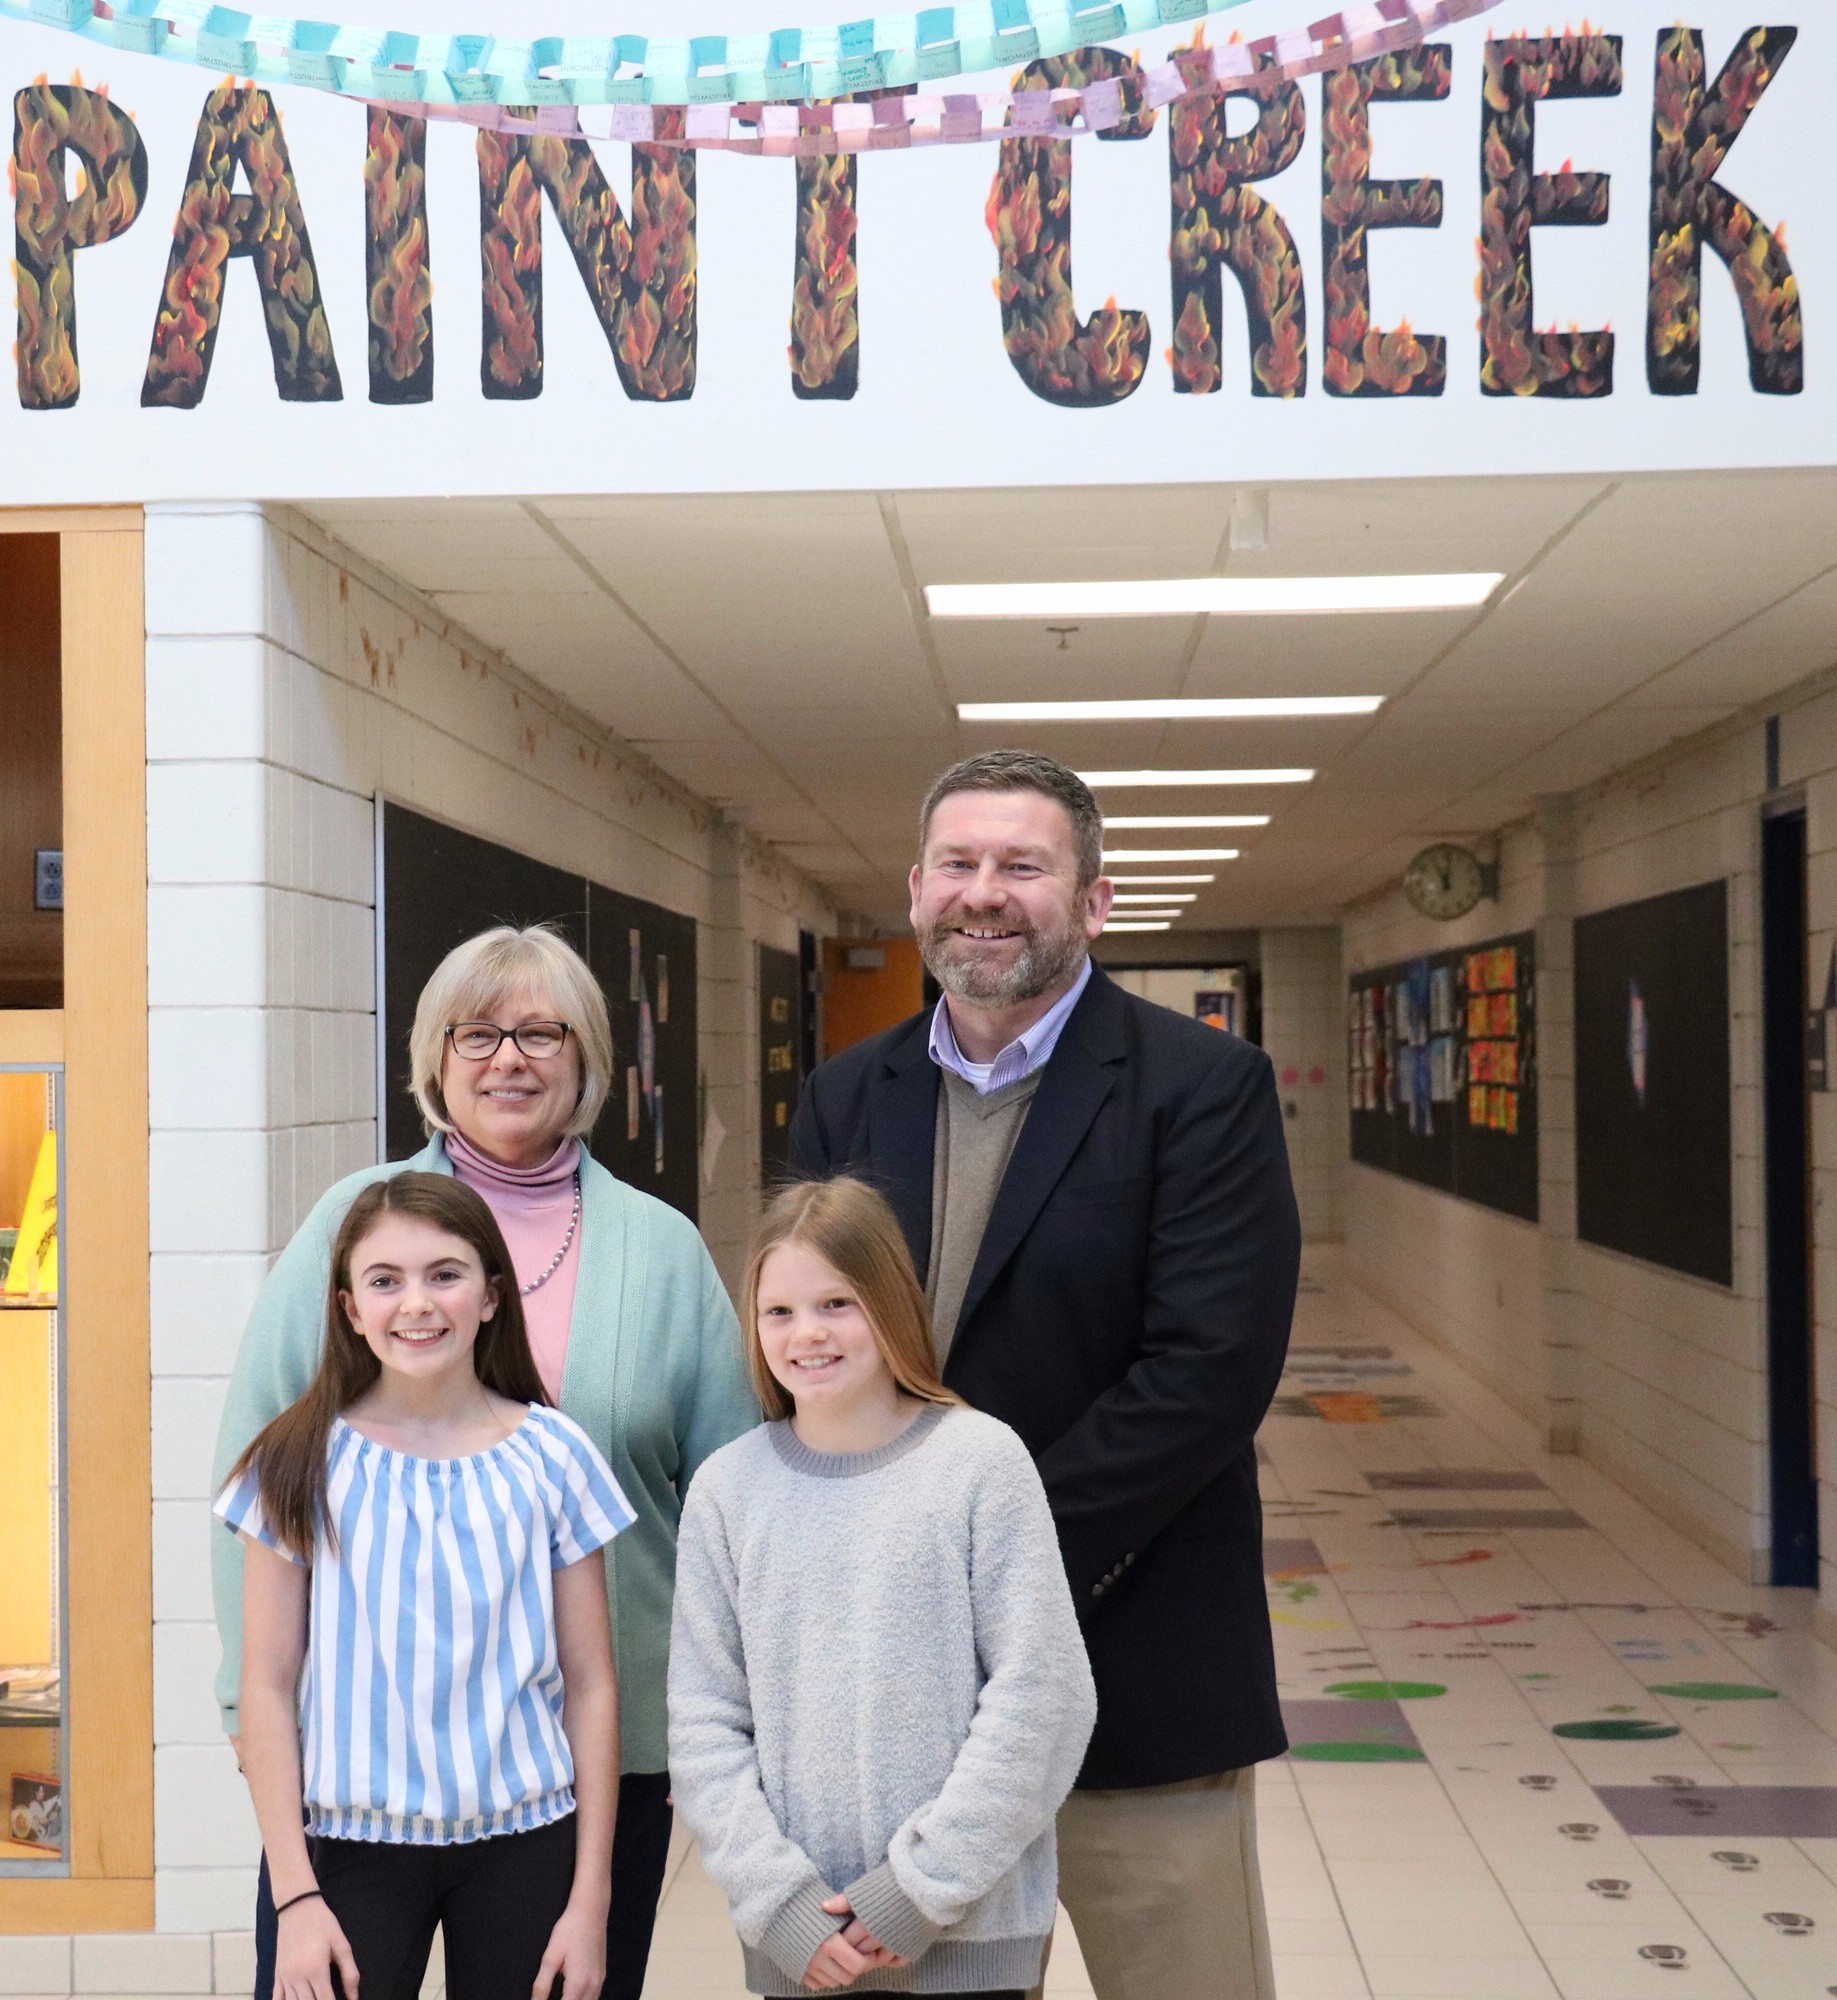 Sen. Bayer visits Paint Creek, learns about engineering, art, and shares about government